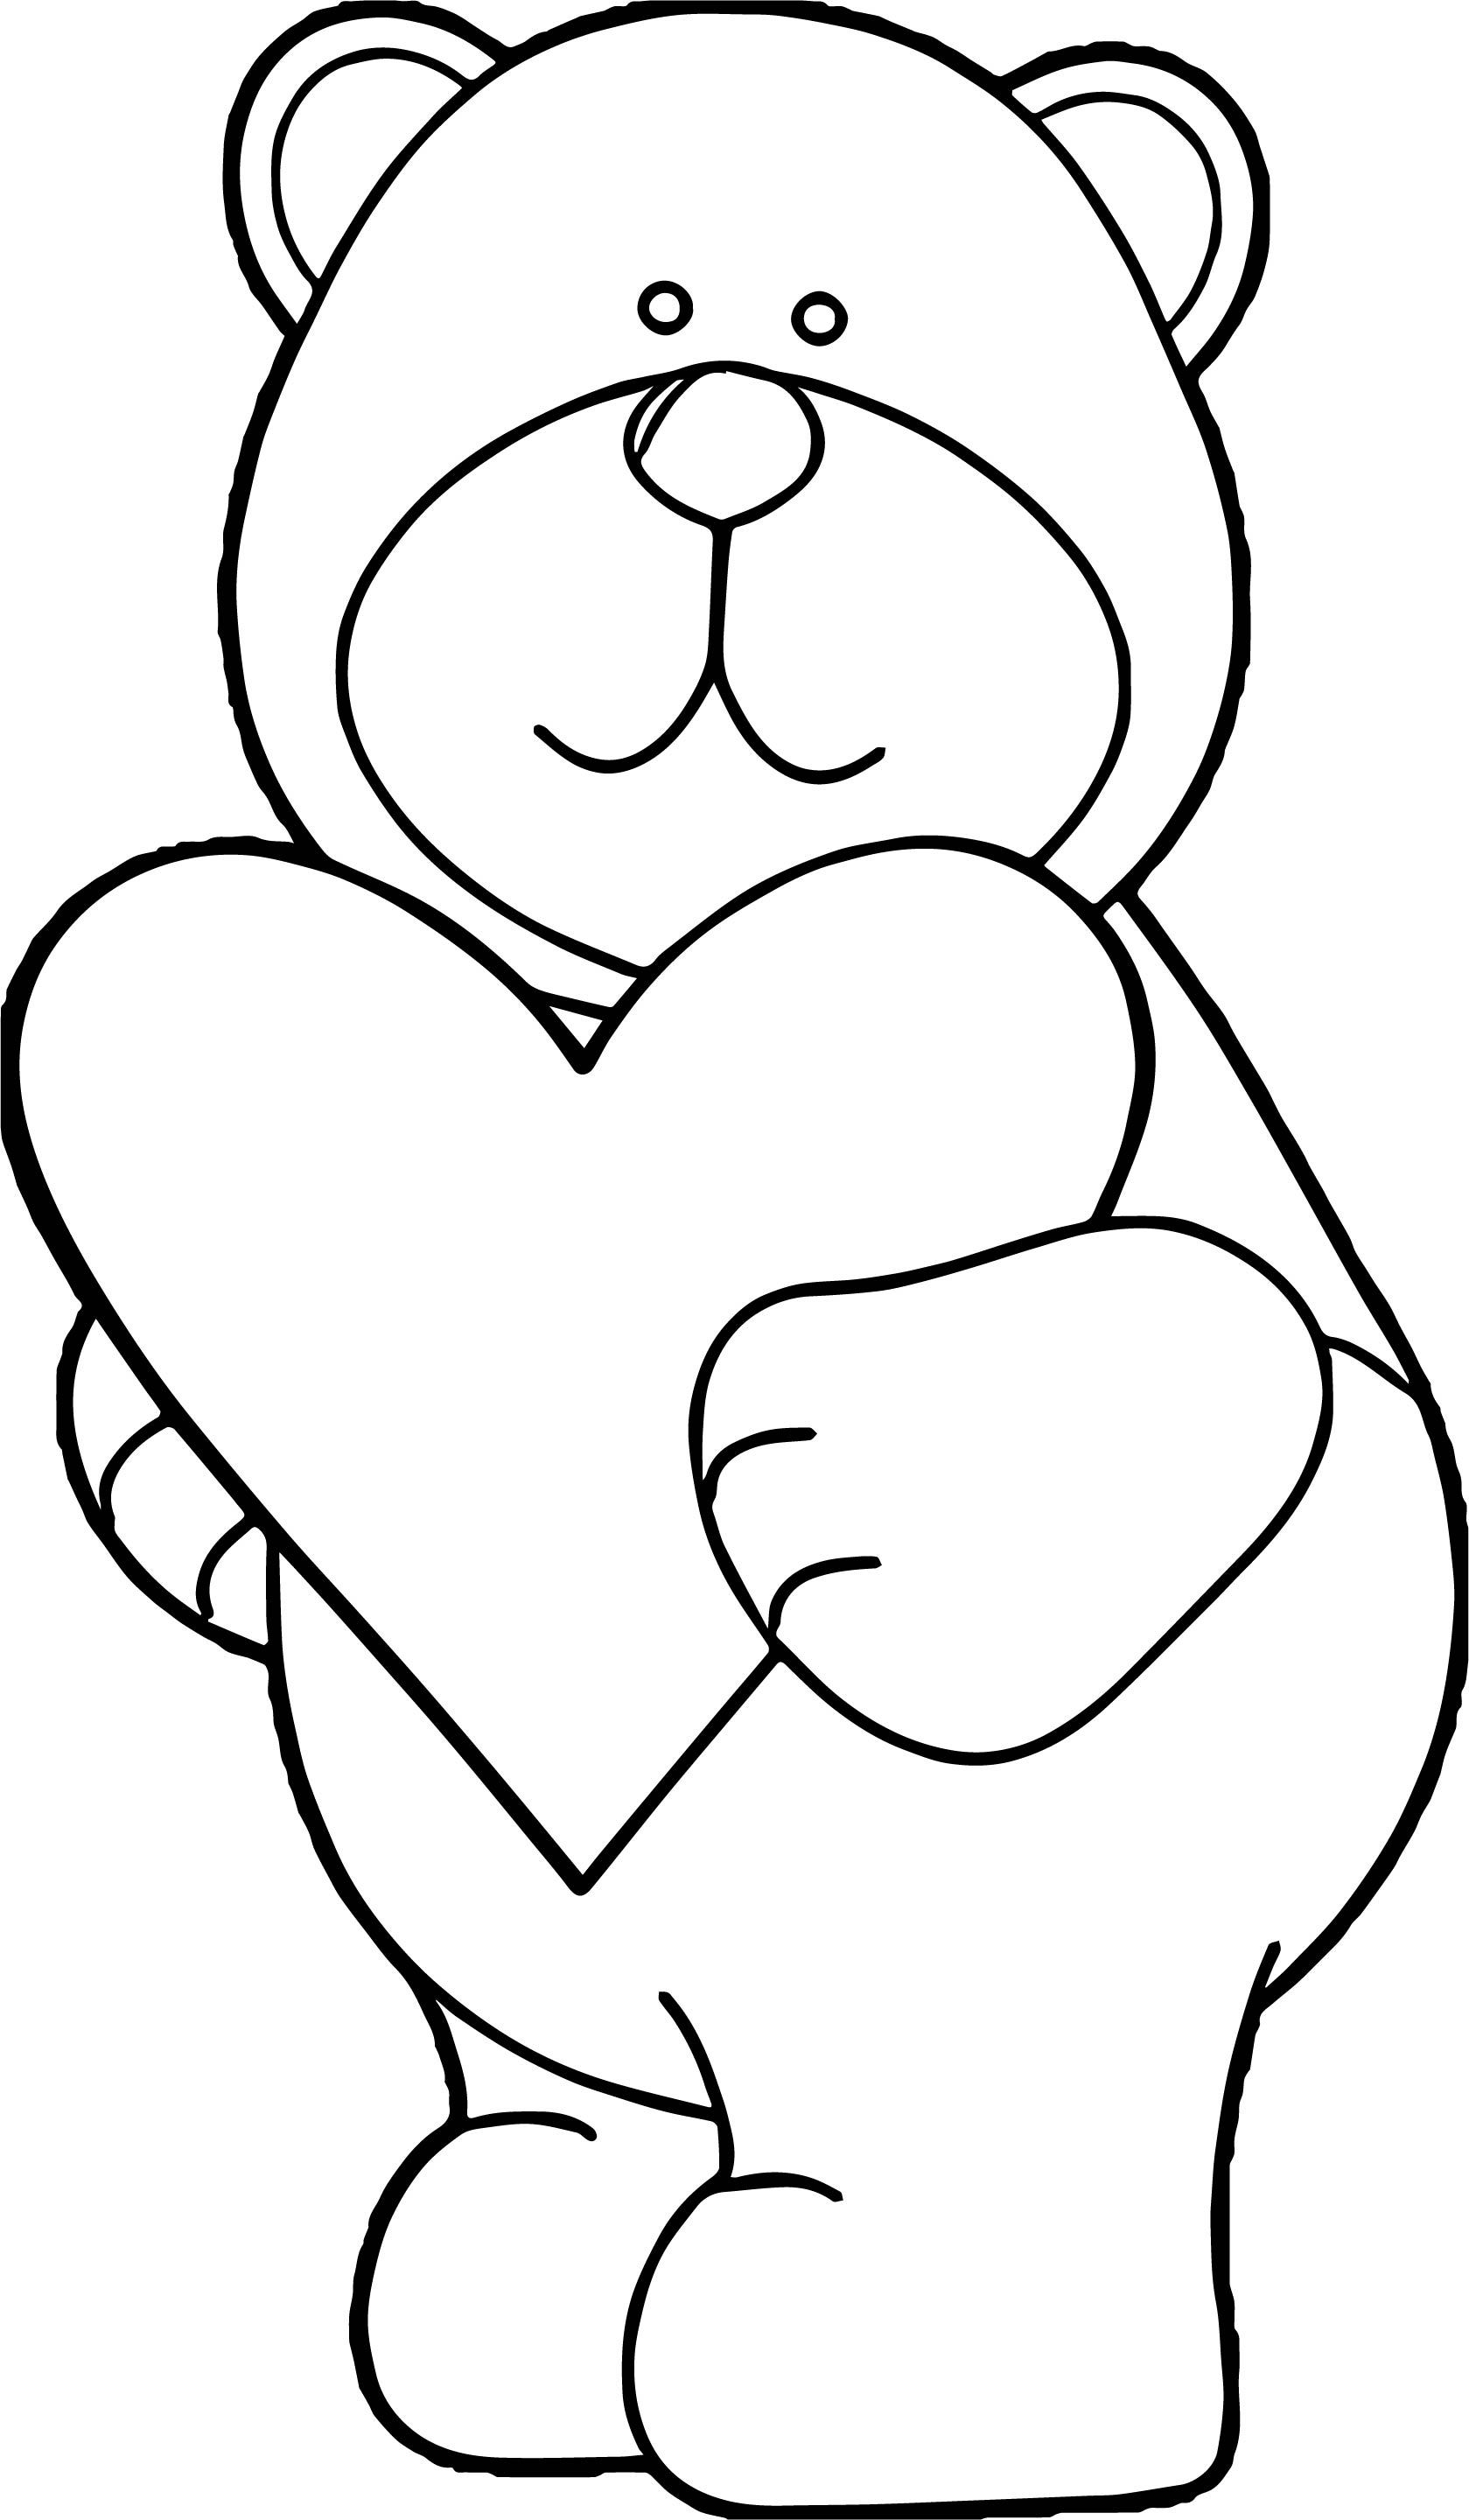 coloring bears teddy bear with heart coloring pages at getcoloringscom coloring bears